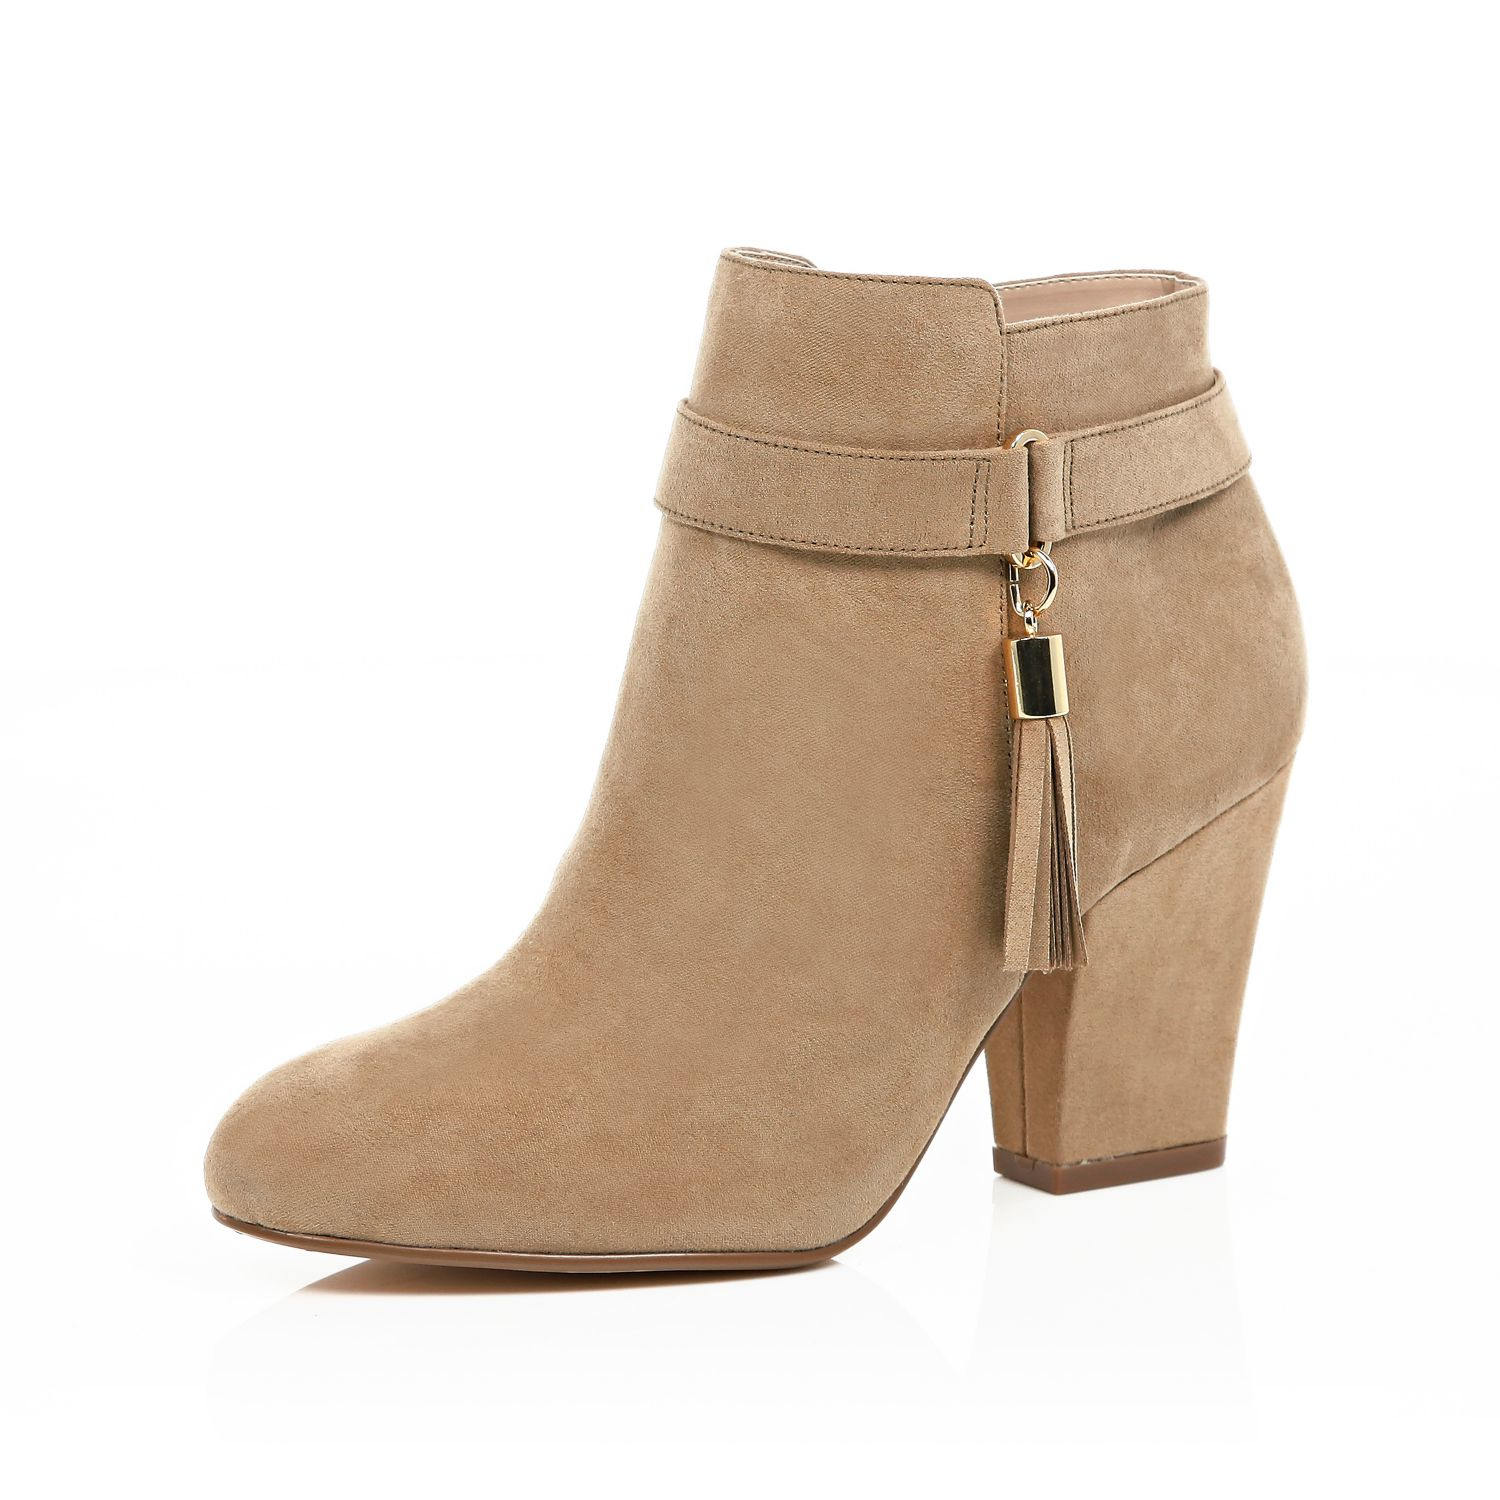 River Island Tassel Ankle Boots